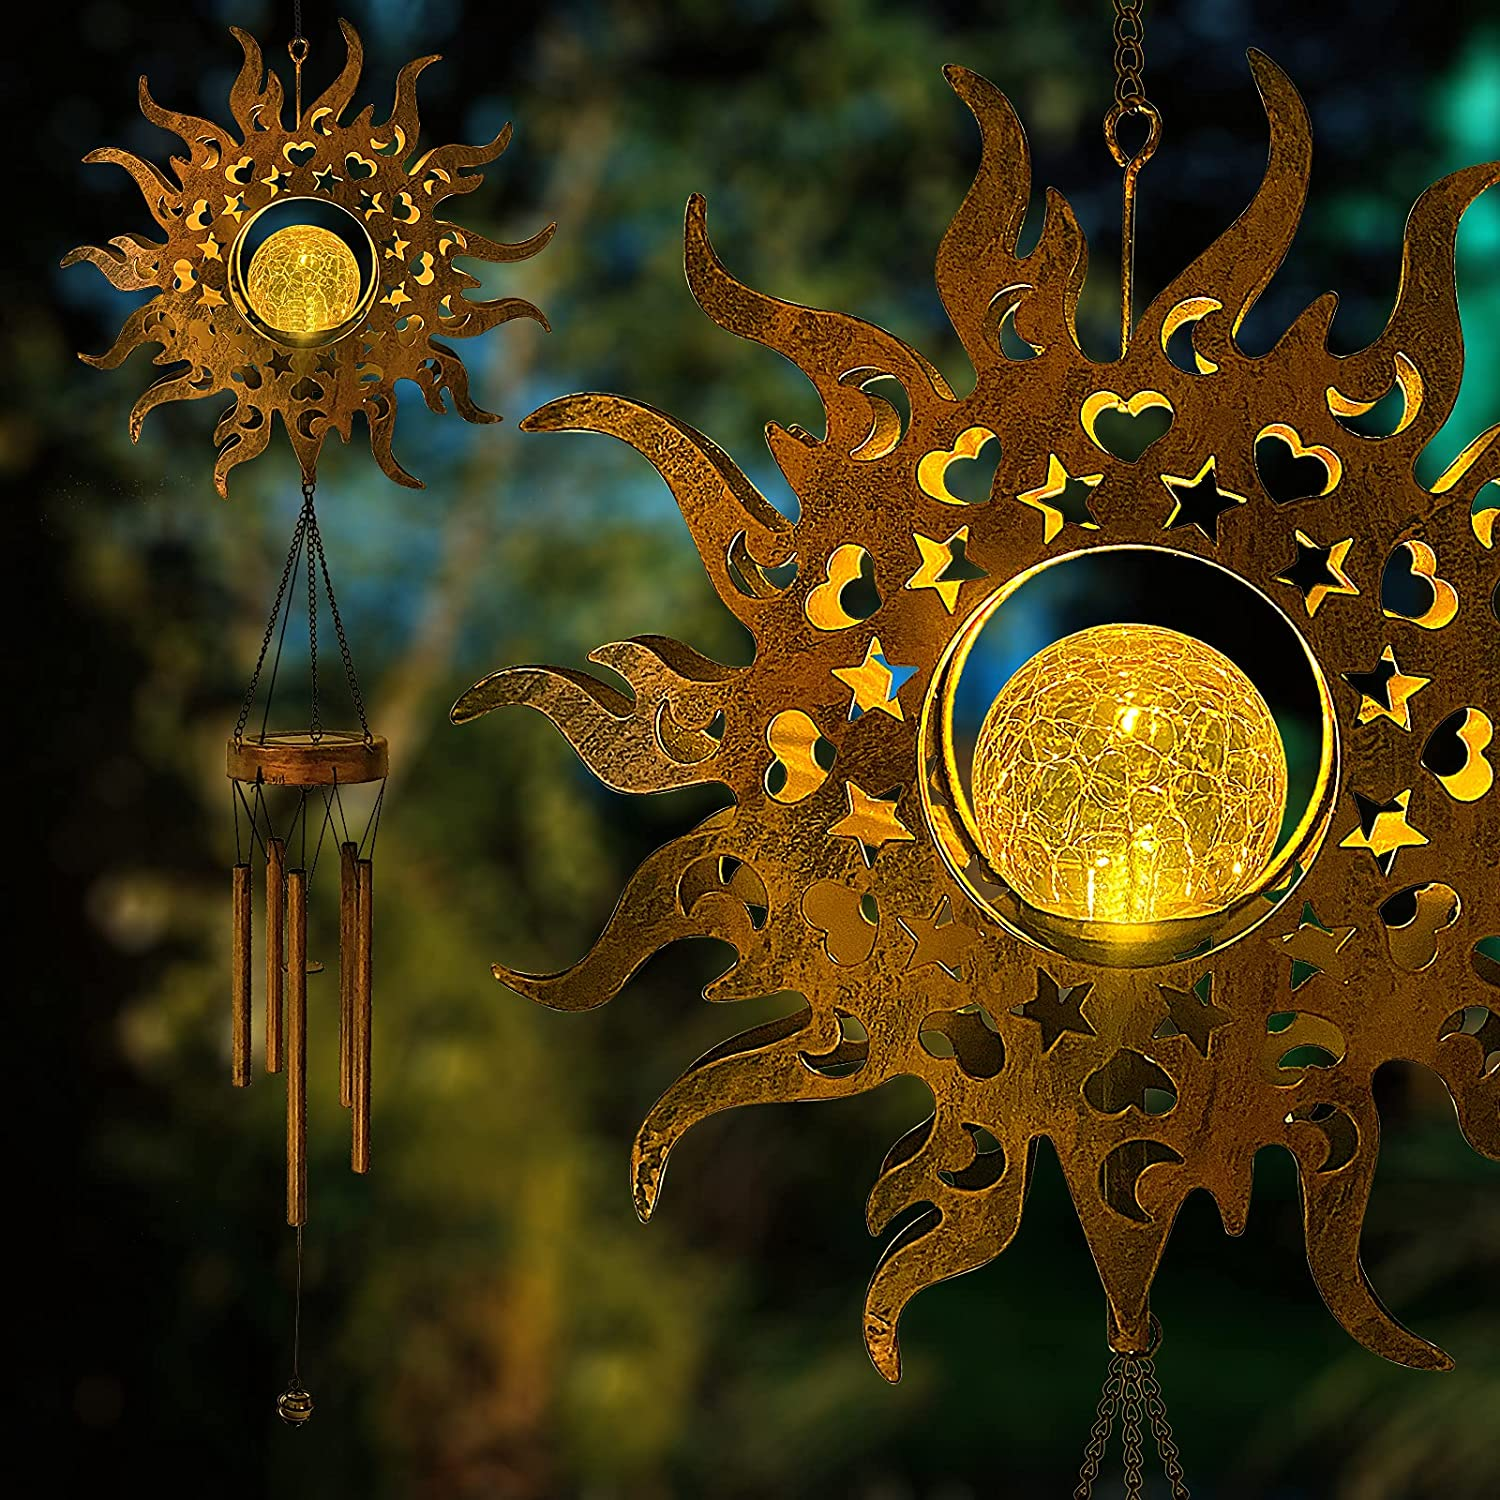 Solar Wind Chimes Outdoor Light - Hanging Sun Crackle Glass Ball Warm LED Waterproof Memorial Wind Chimes with Metal Tubes, Unique Sympathy Gift for Mom Women, Musical Decor for Garden Yard Porch